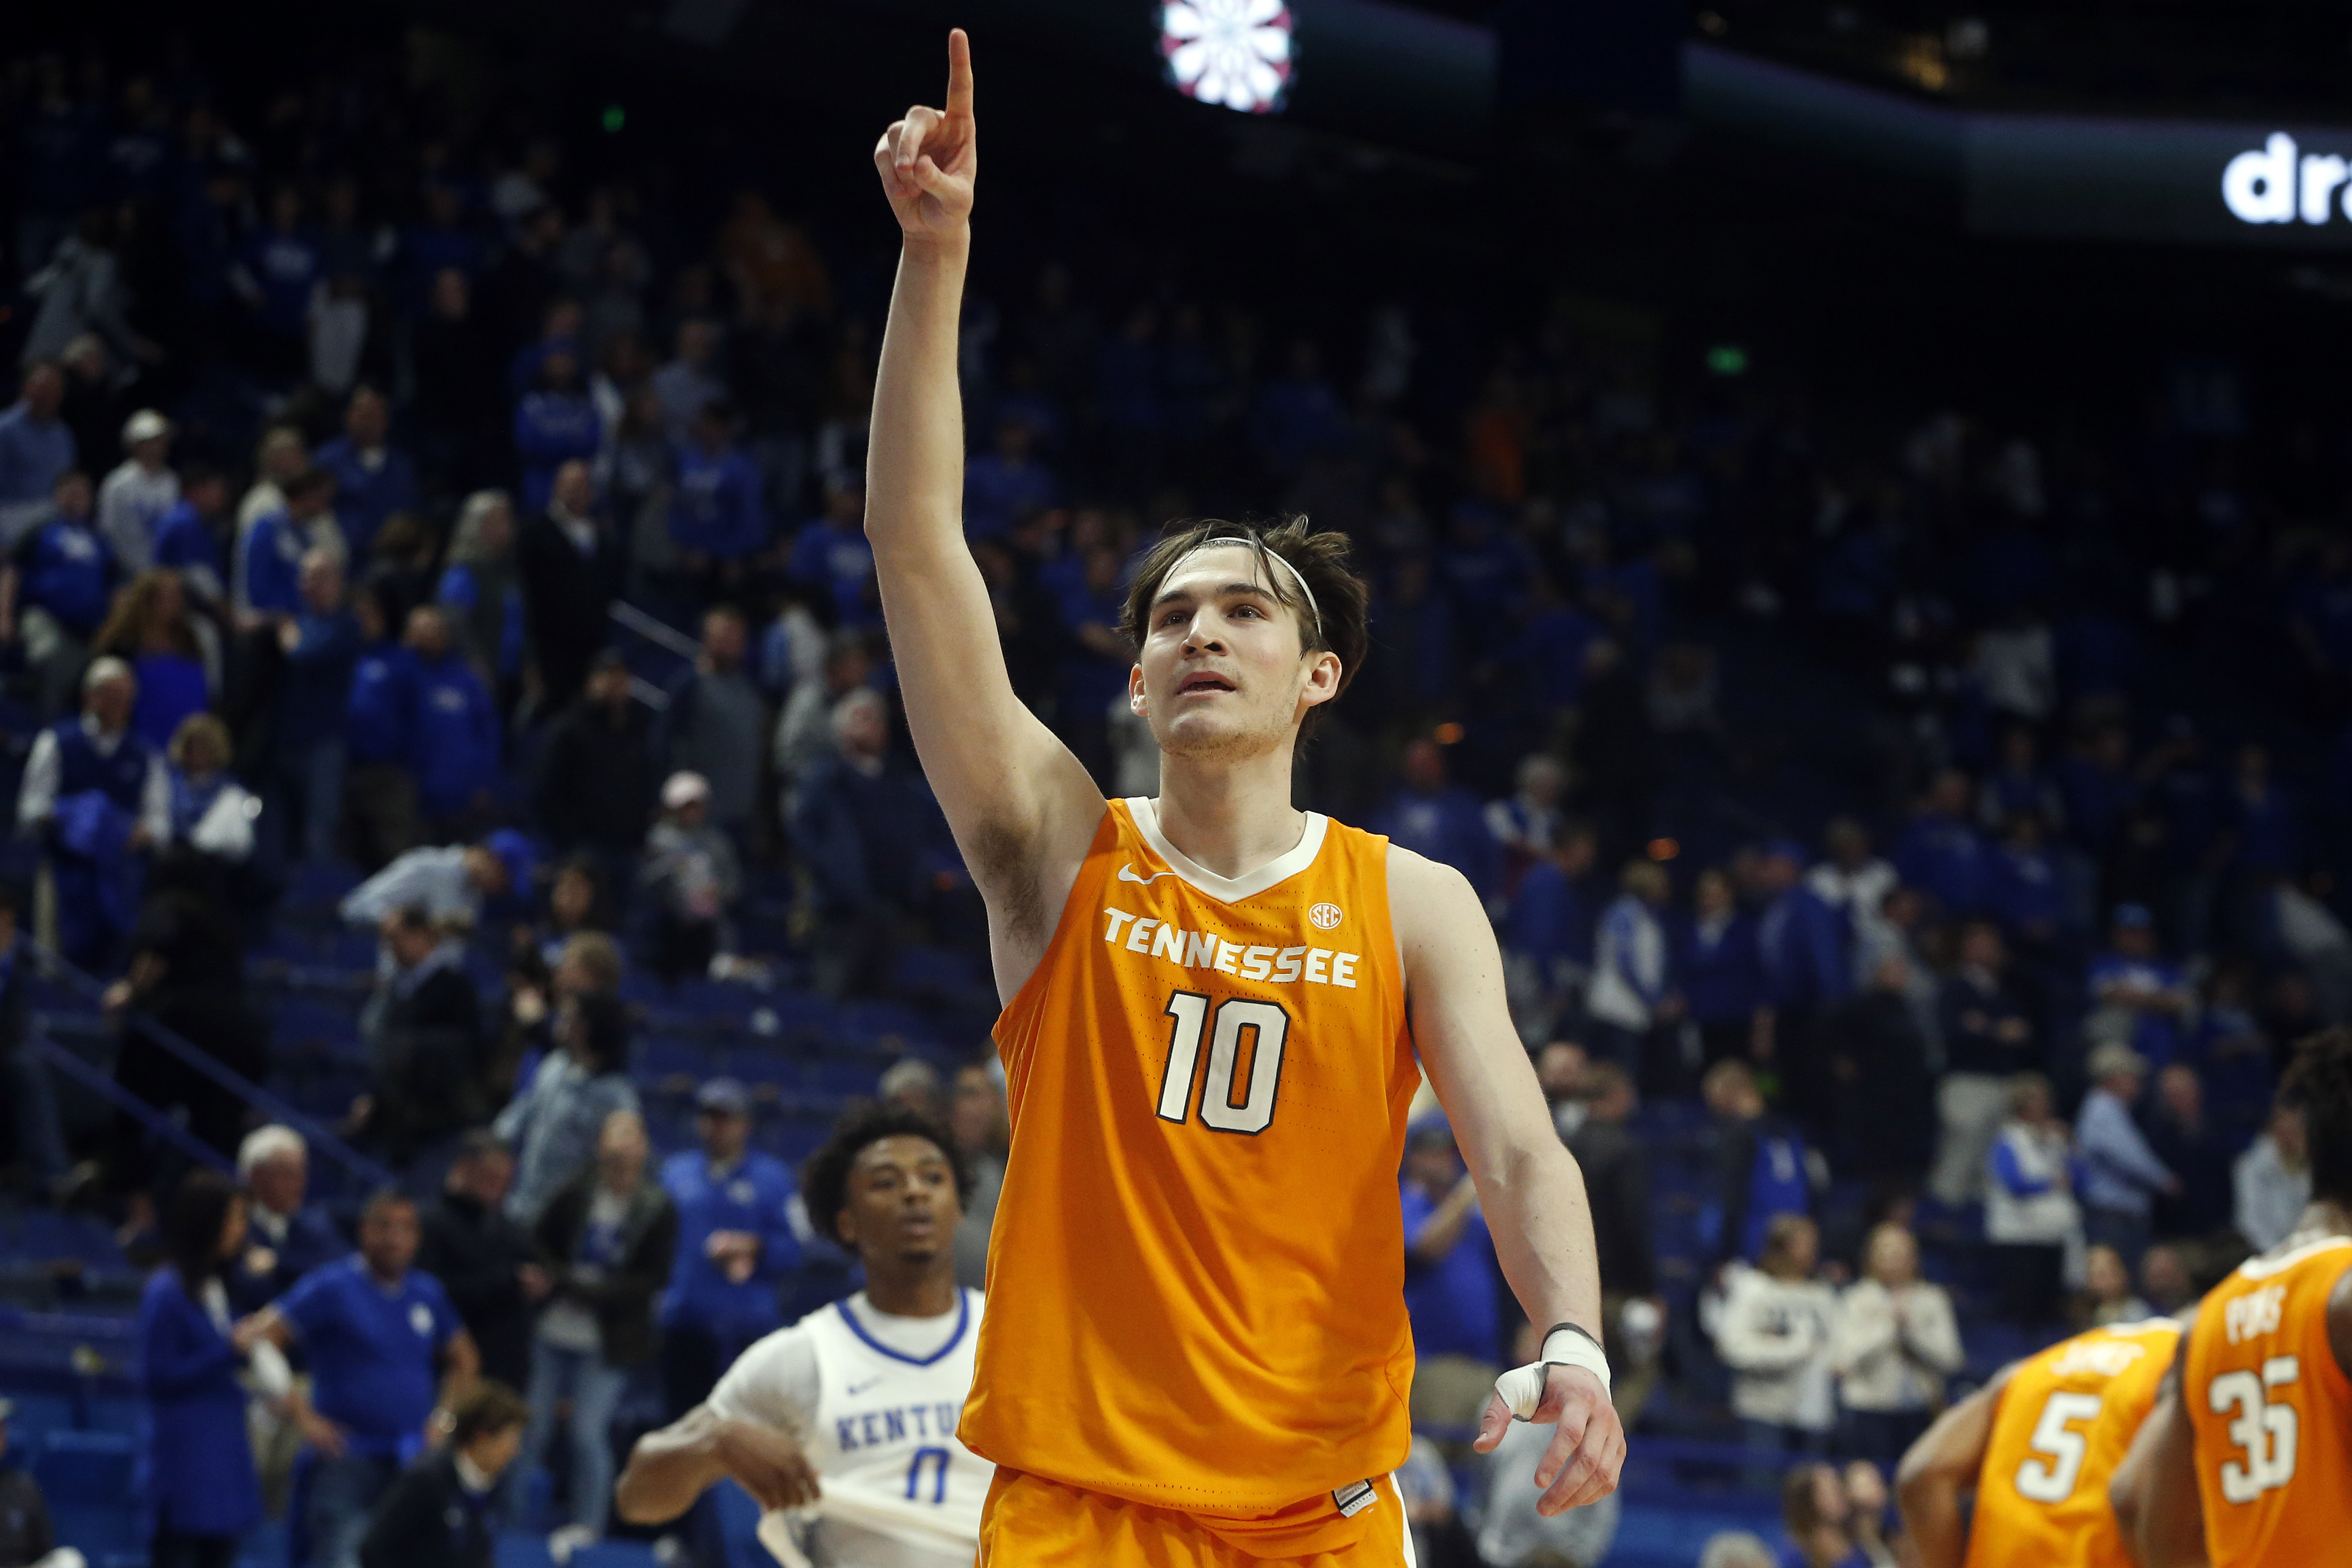 Vols upset No. 6 Kentucky as ranked teams have rough night